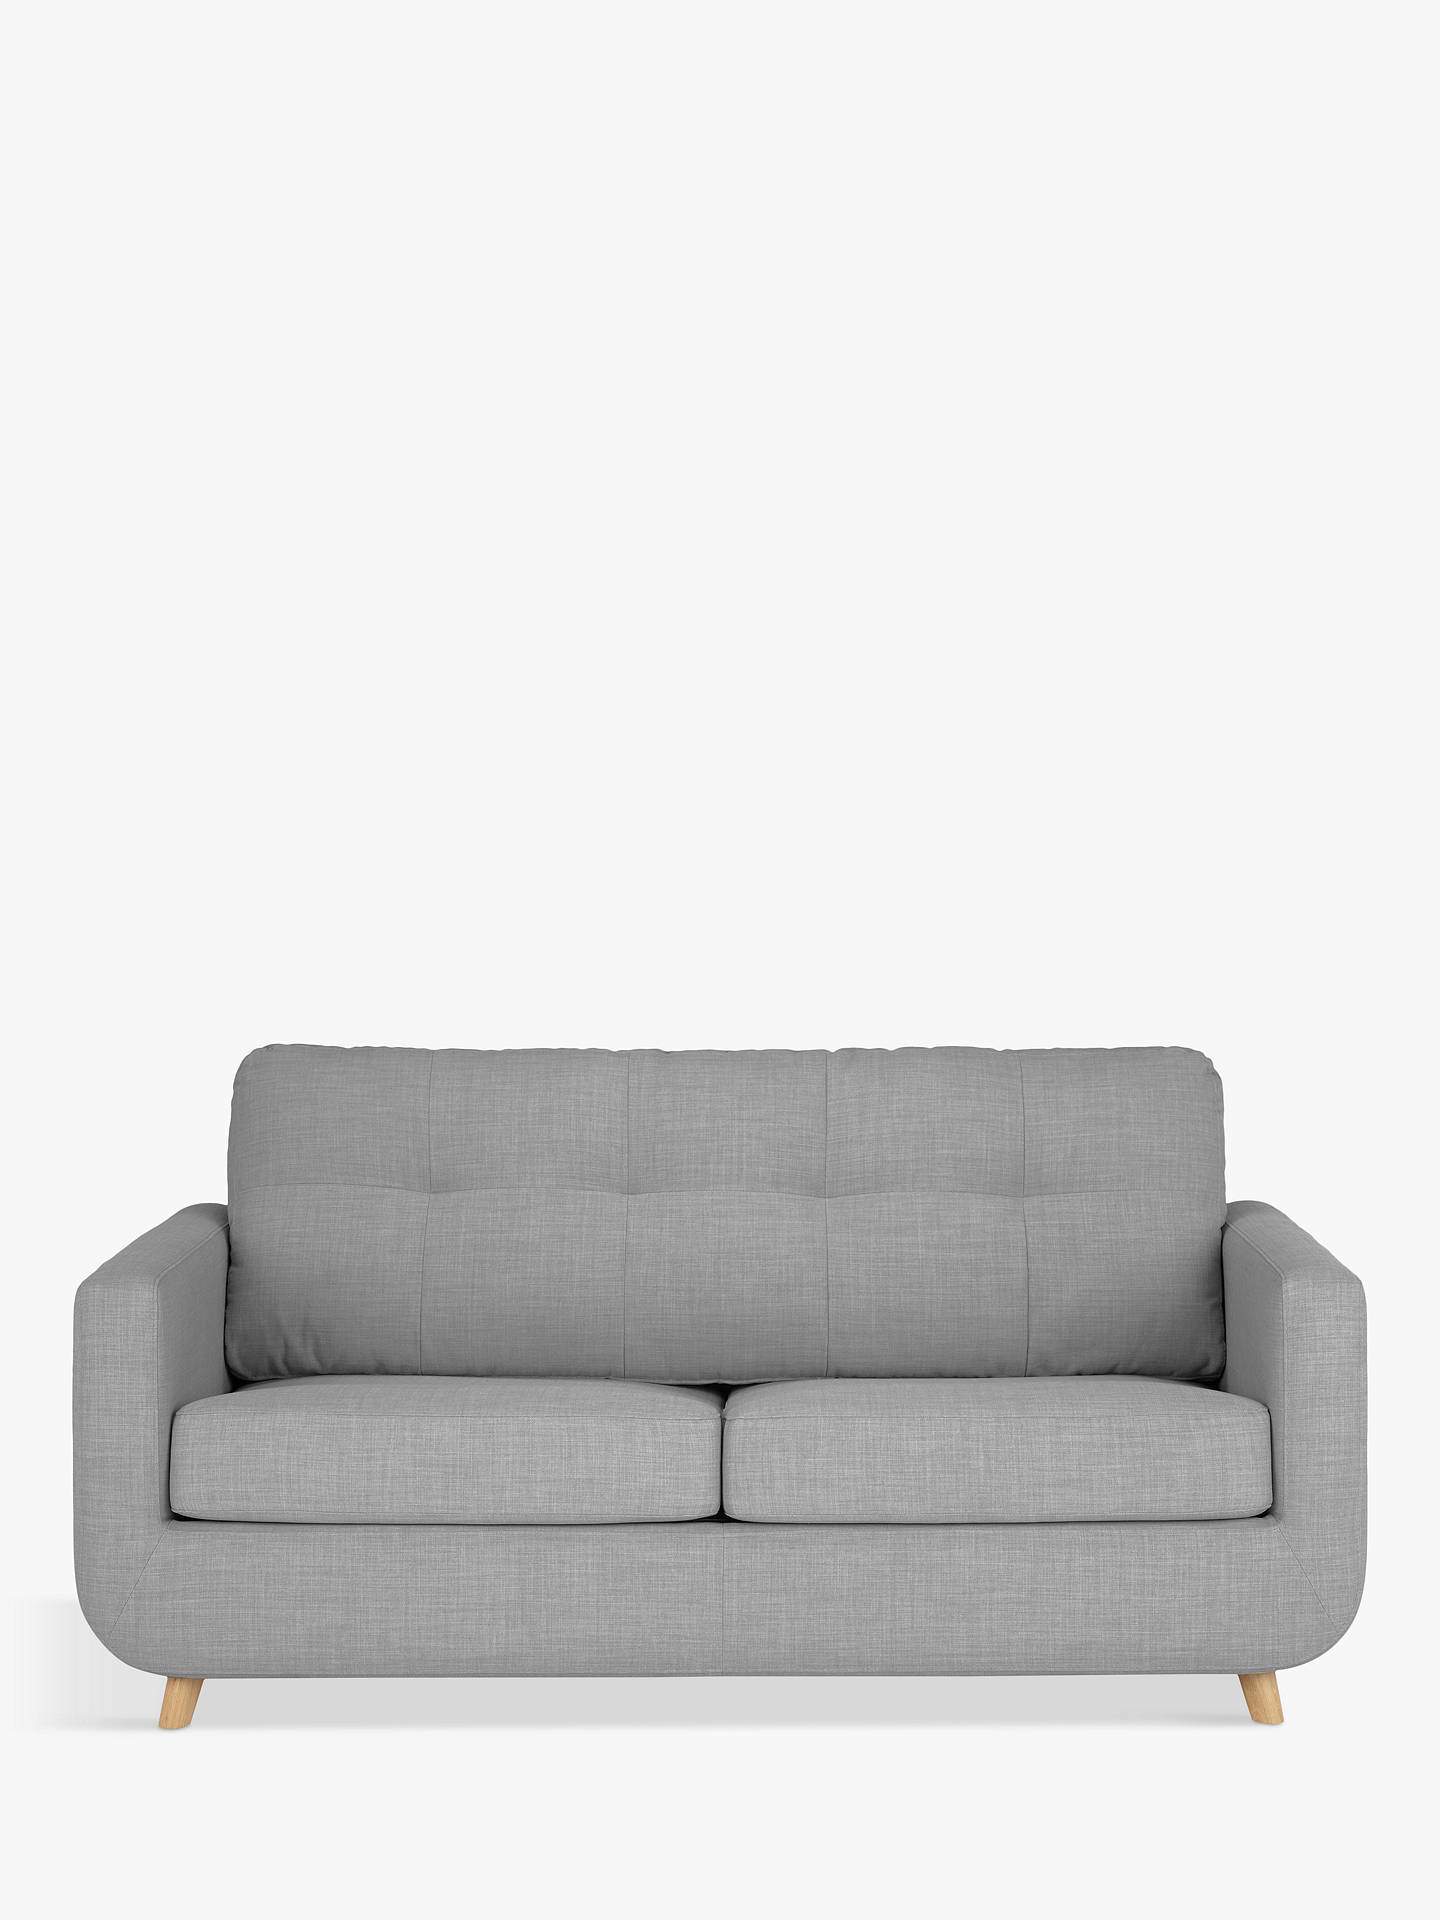 Terrific John Lewis Partners Barbican Medium 2 Seater Sofa Bed Light Leg Connie Grey Ocoug Best Dining Table And Chair Ideas Images Ocougorg